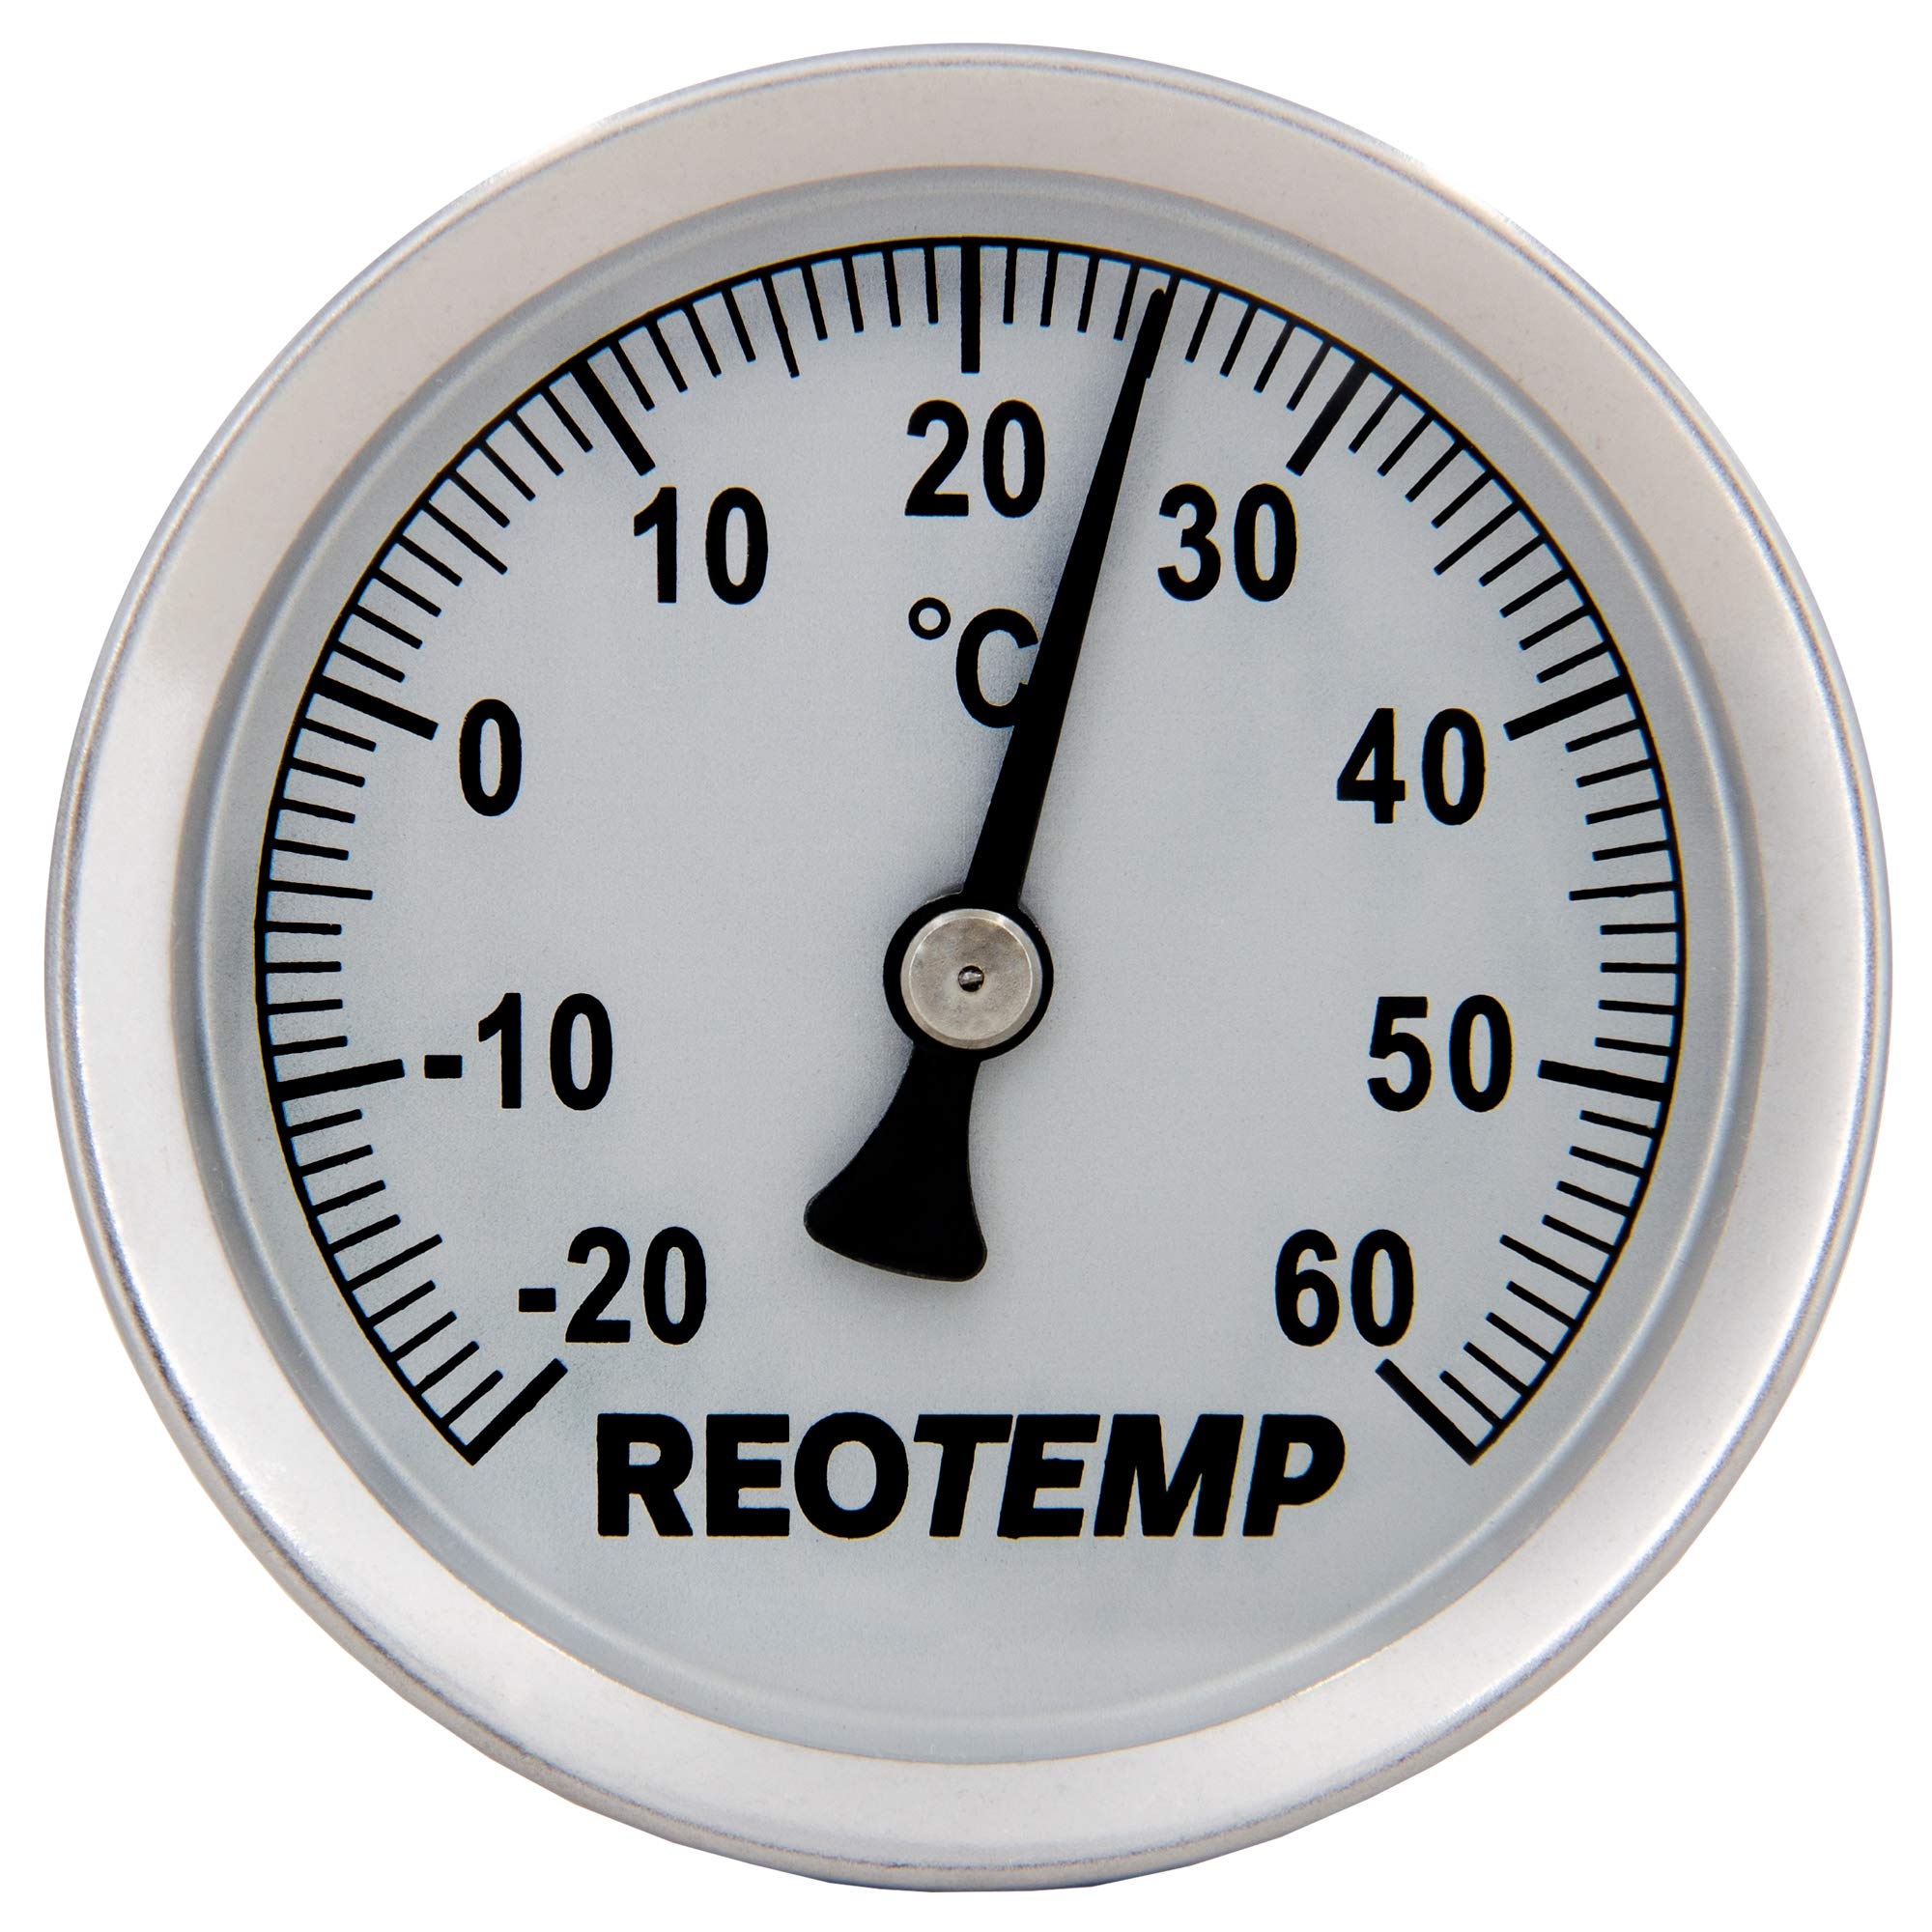 REOTEMP S1-C32 Magnetic Analog Surface Thermometer, -20 to 60 Celsius